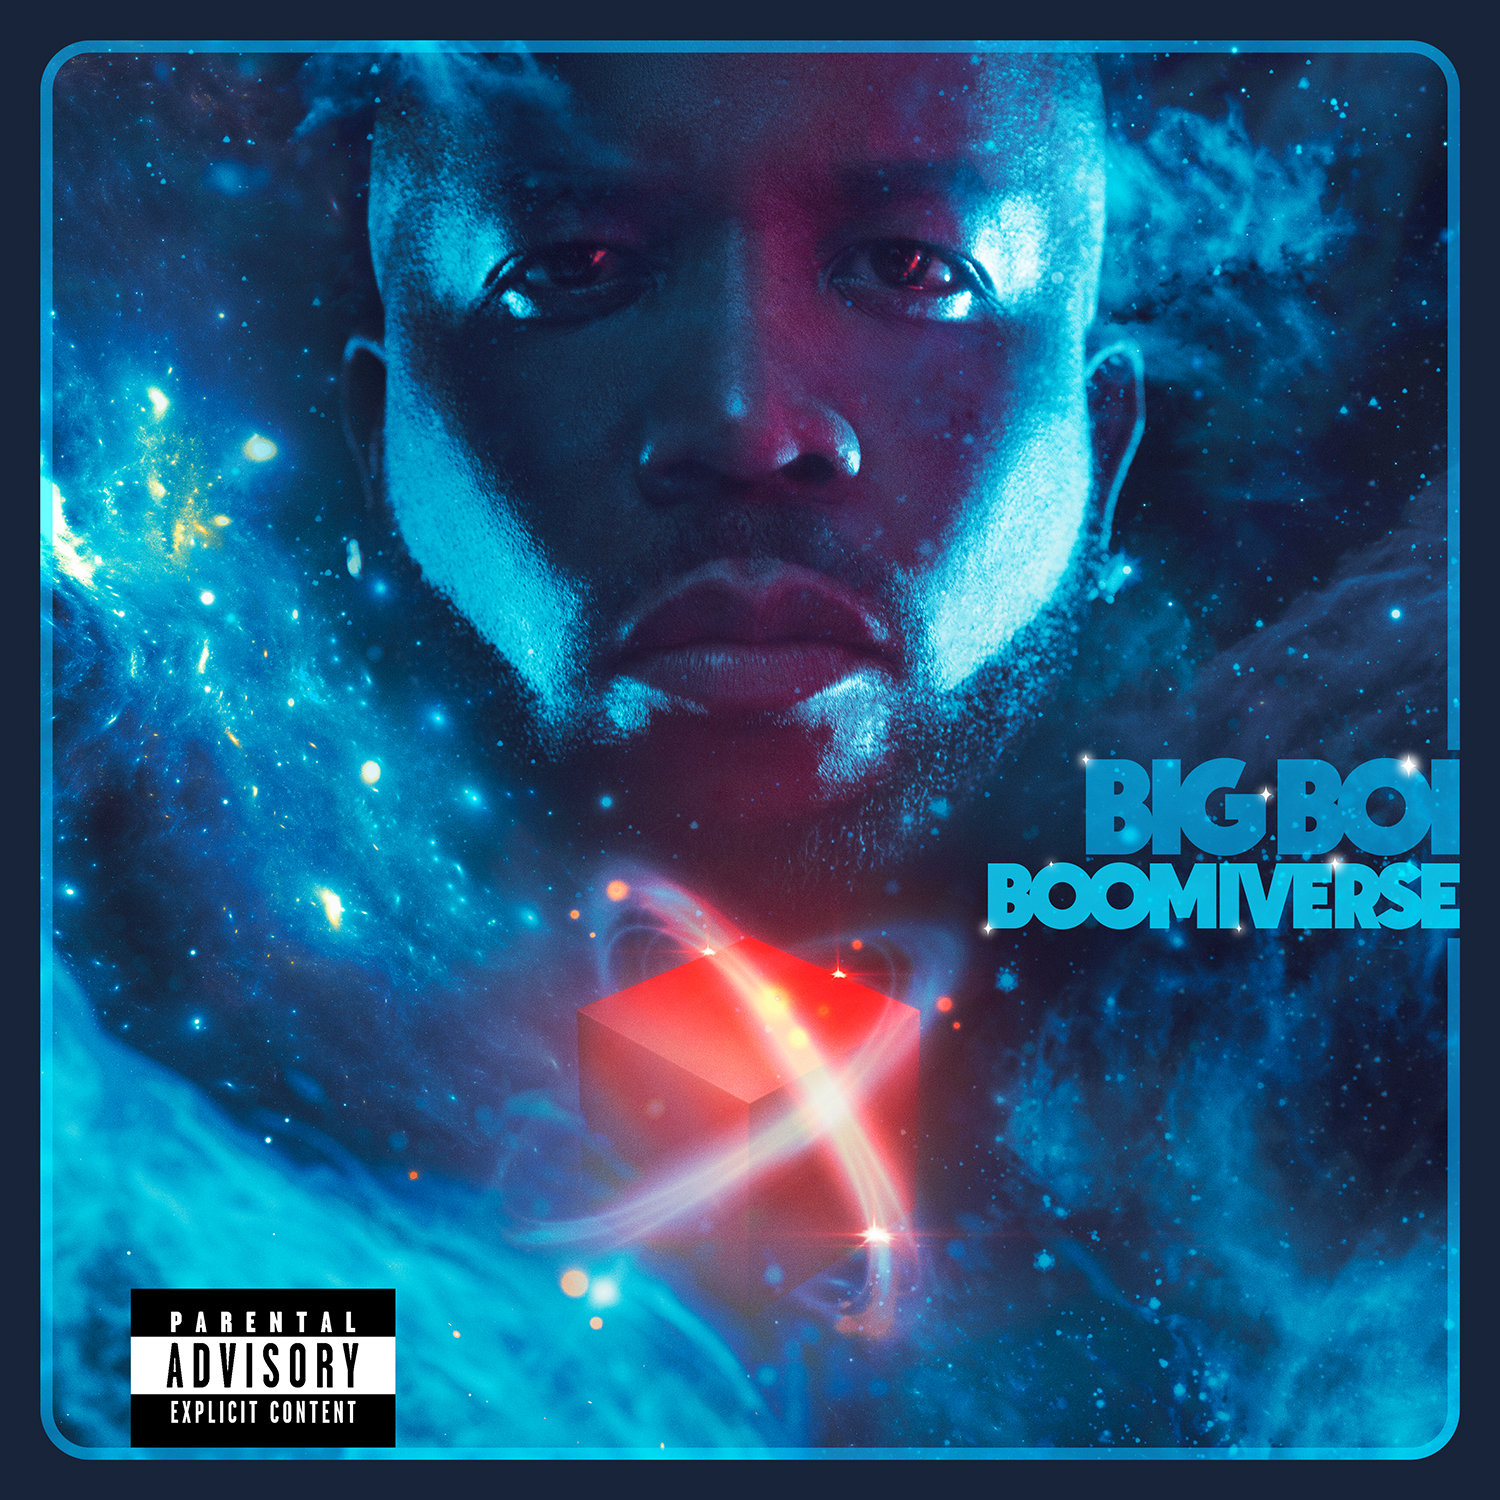 'Boomiverse' by Big Boi, album review by Max Hill